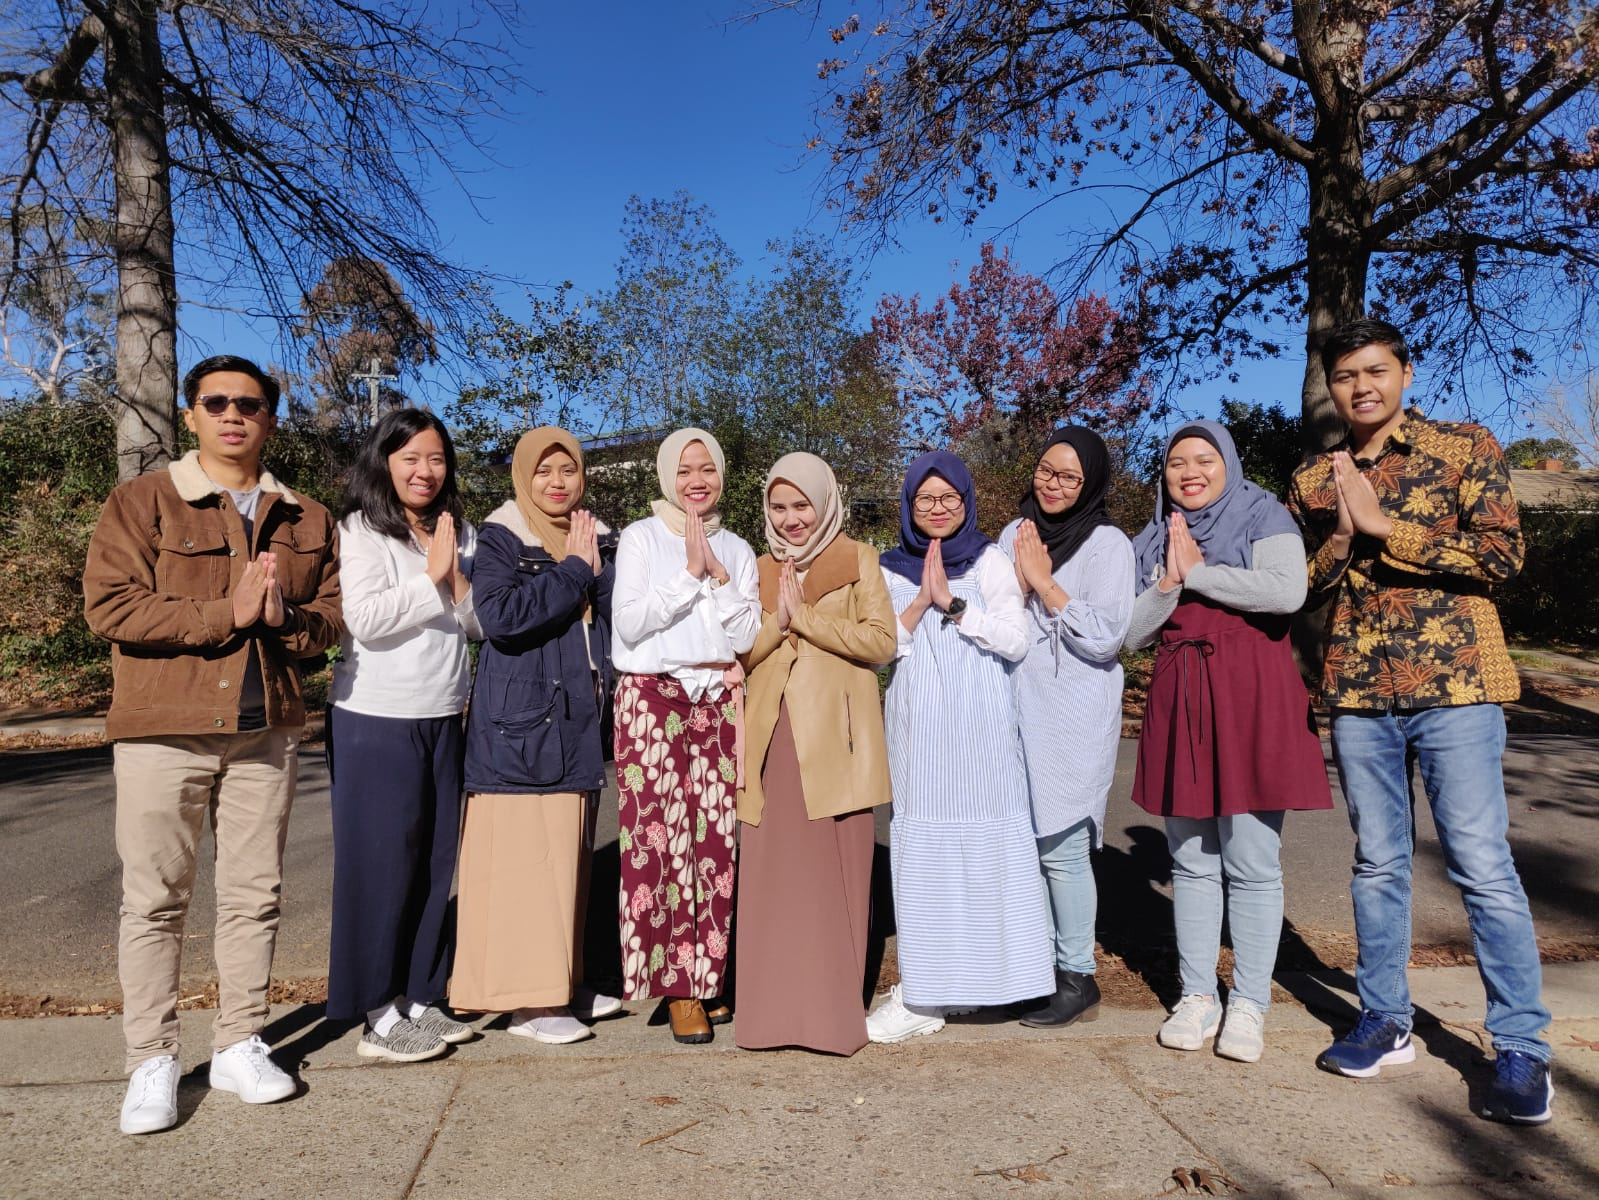 Chandra and other Indonesian students during Ramadhan at ANU. Source: Personal documentation.